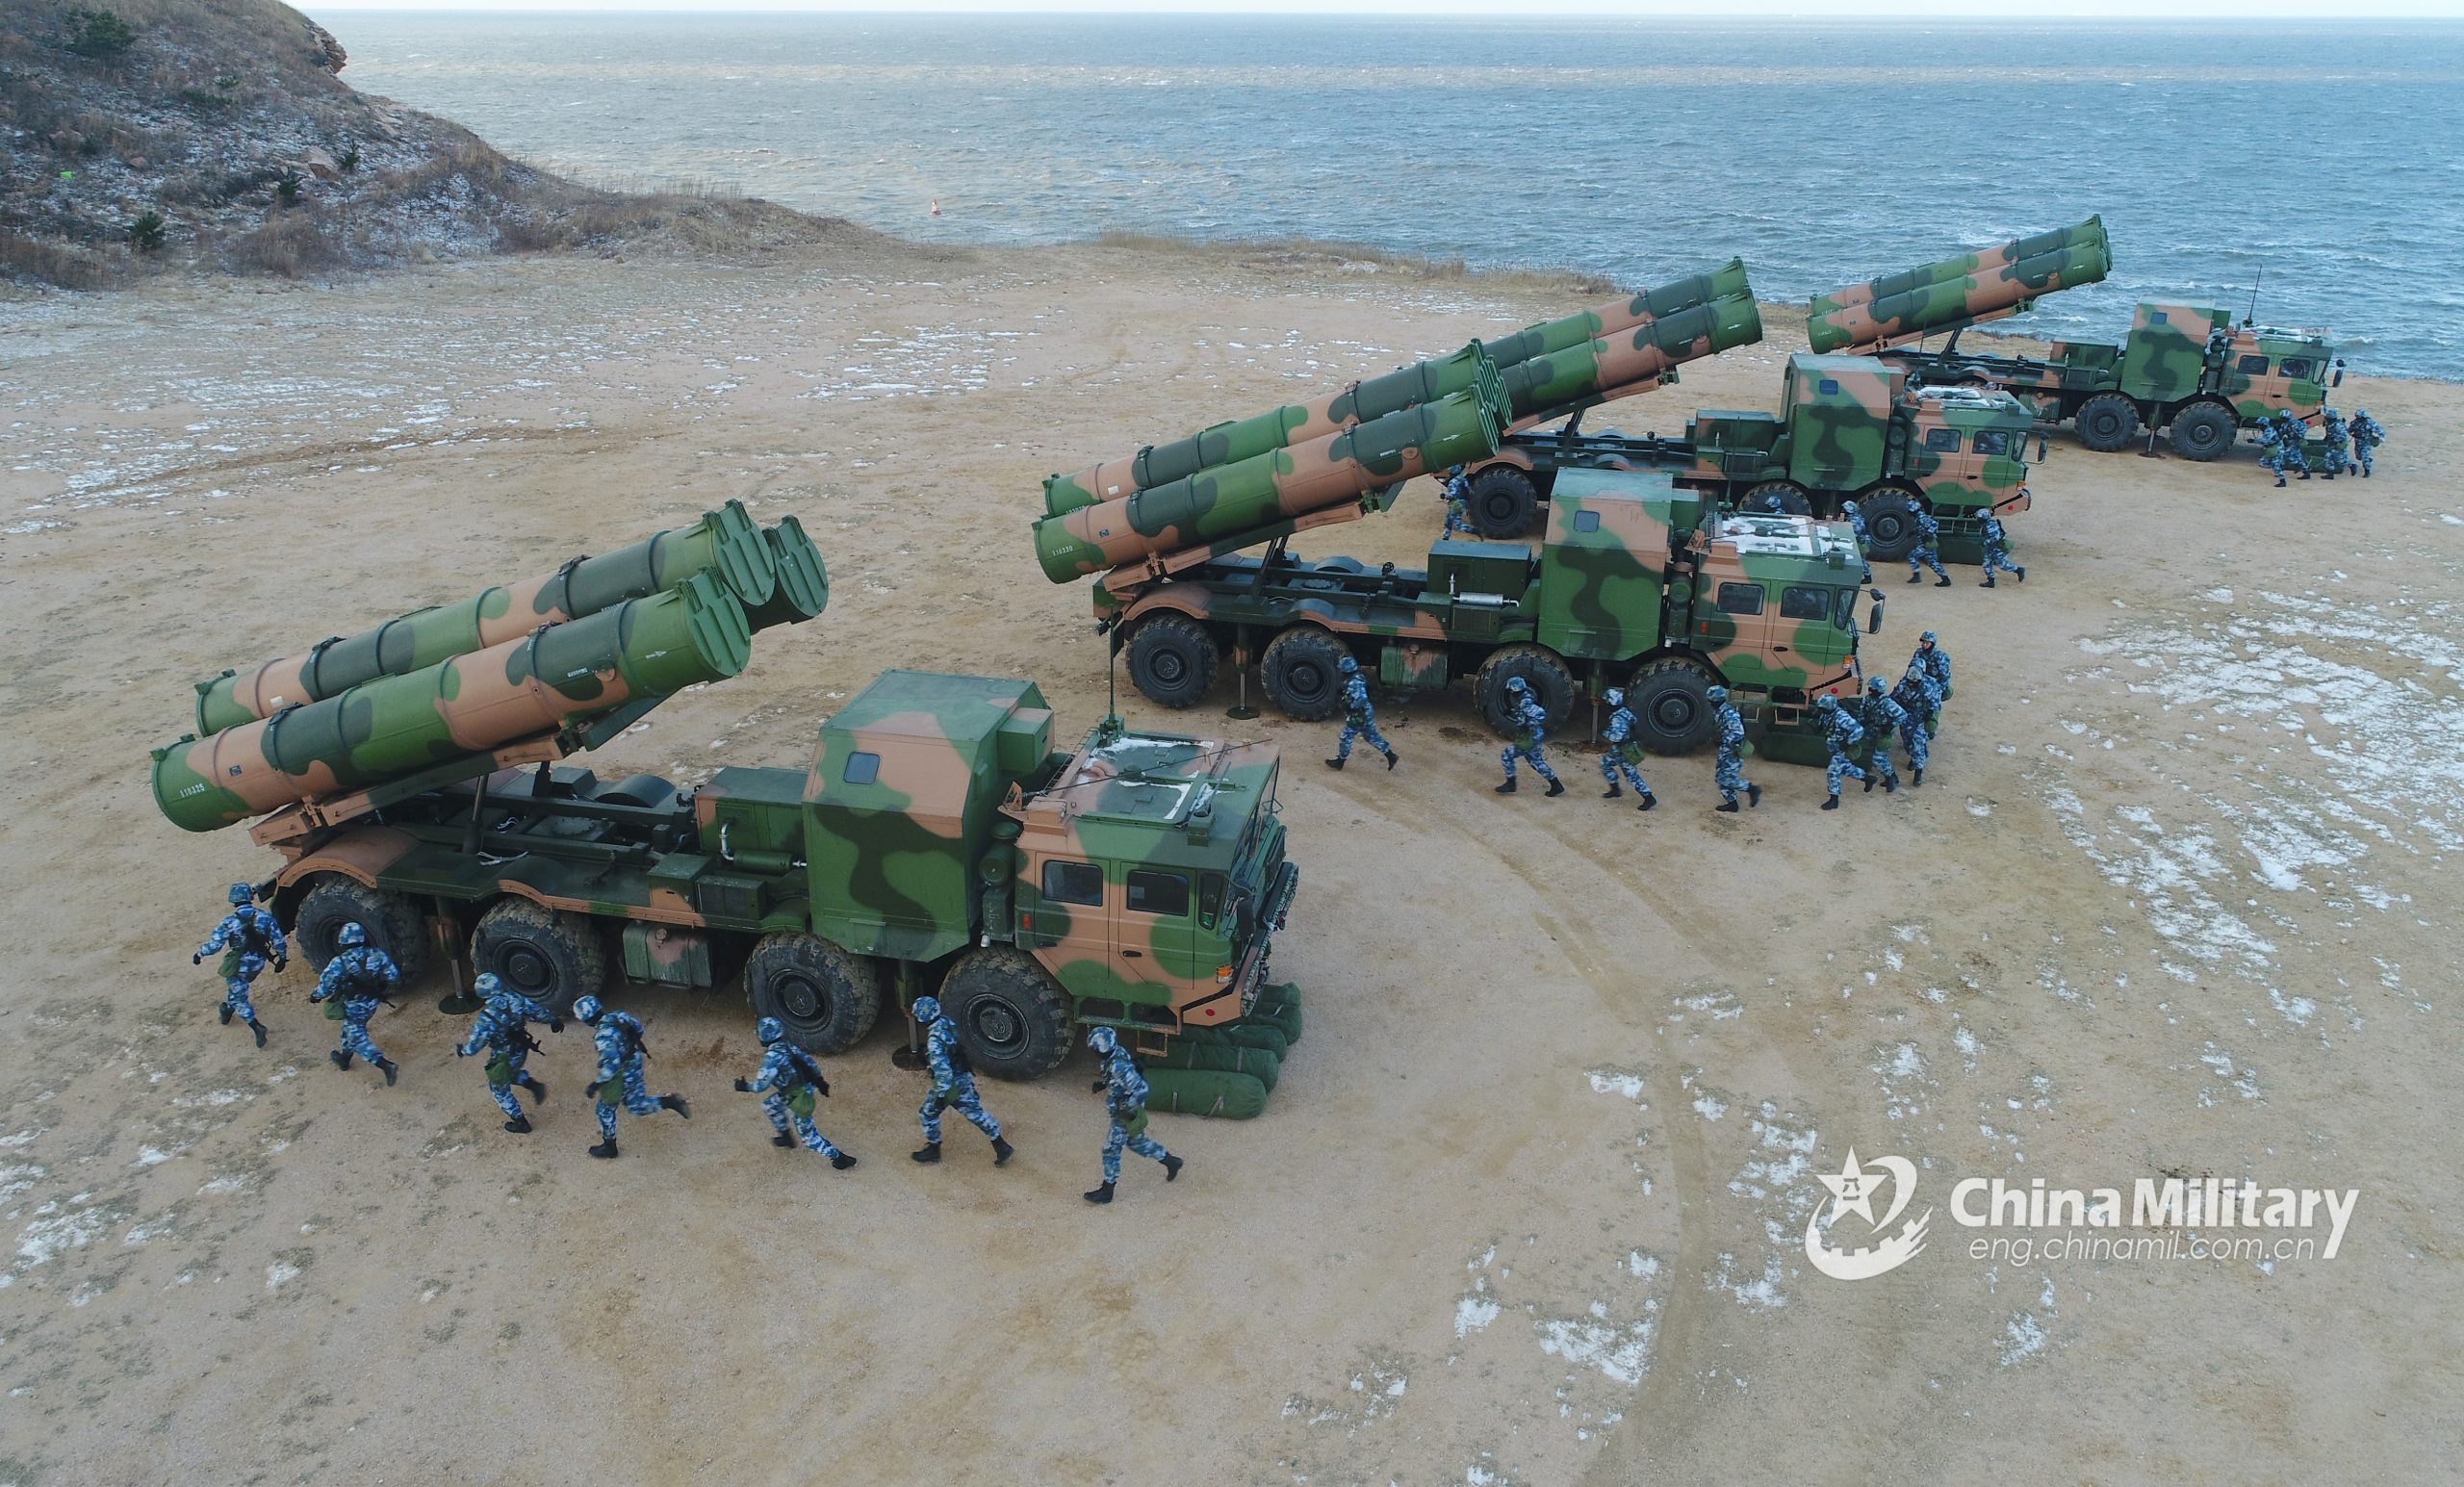 The People's Republic of China's radar-guided anti-ship missiles are one of the most serious threats the RAN may have to contend with.